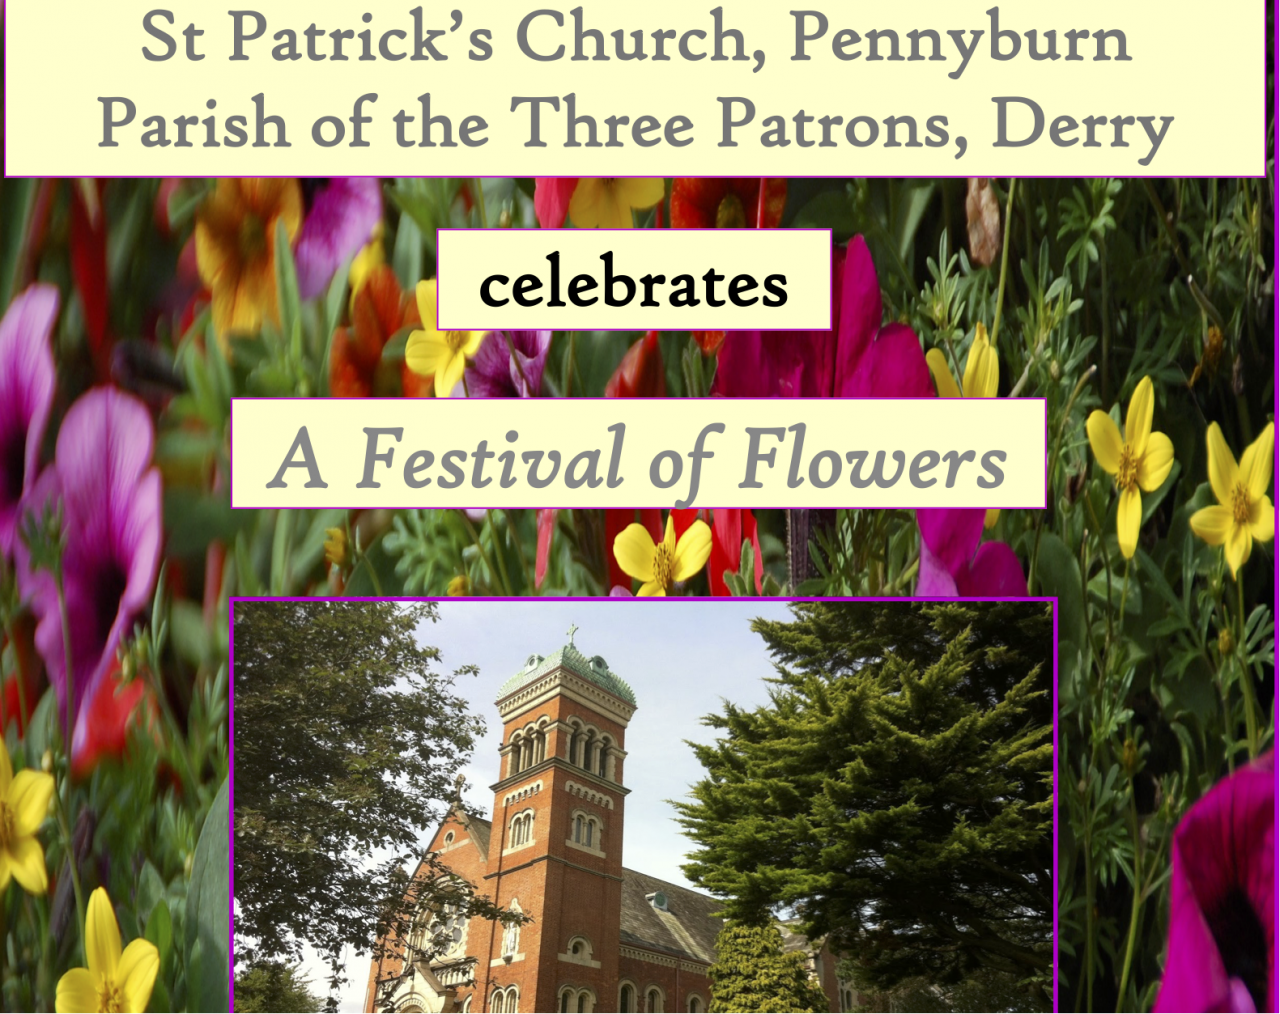 Festival of Flowers at St Patrick's Pennyburn